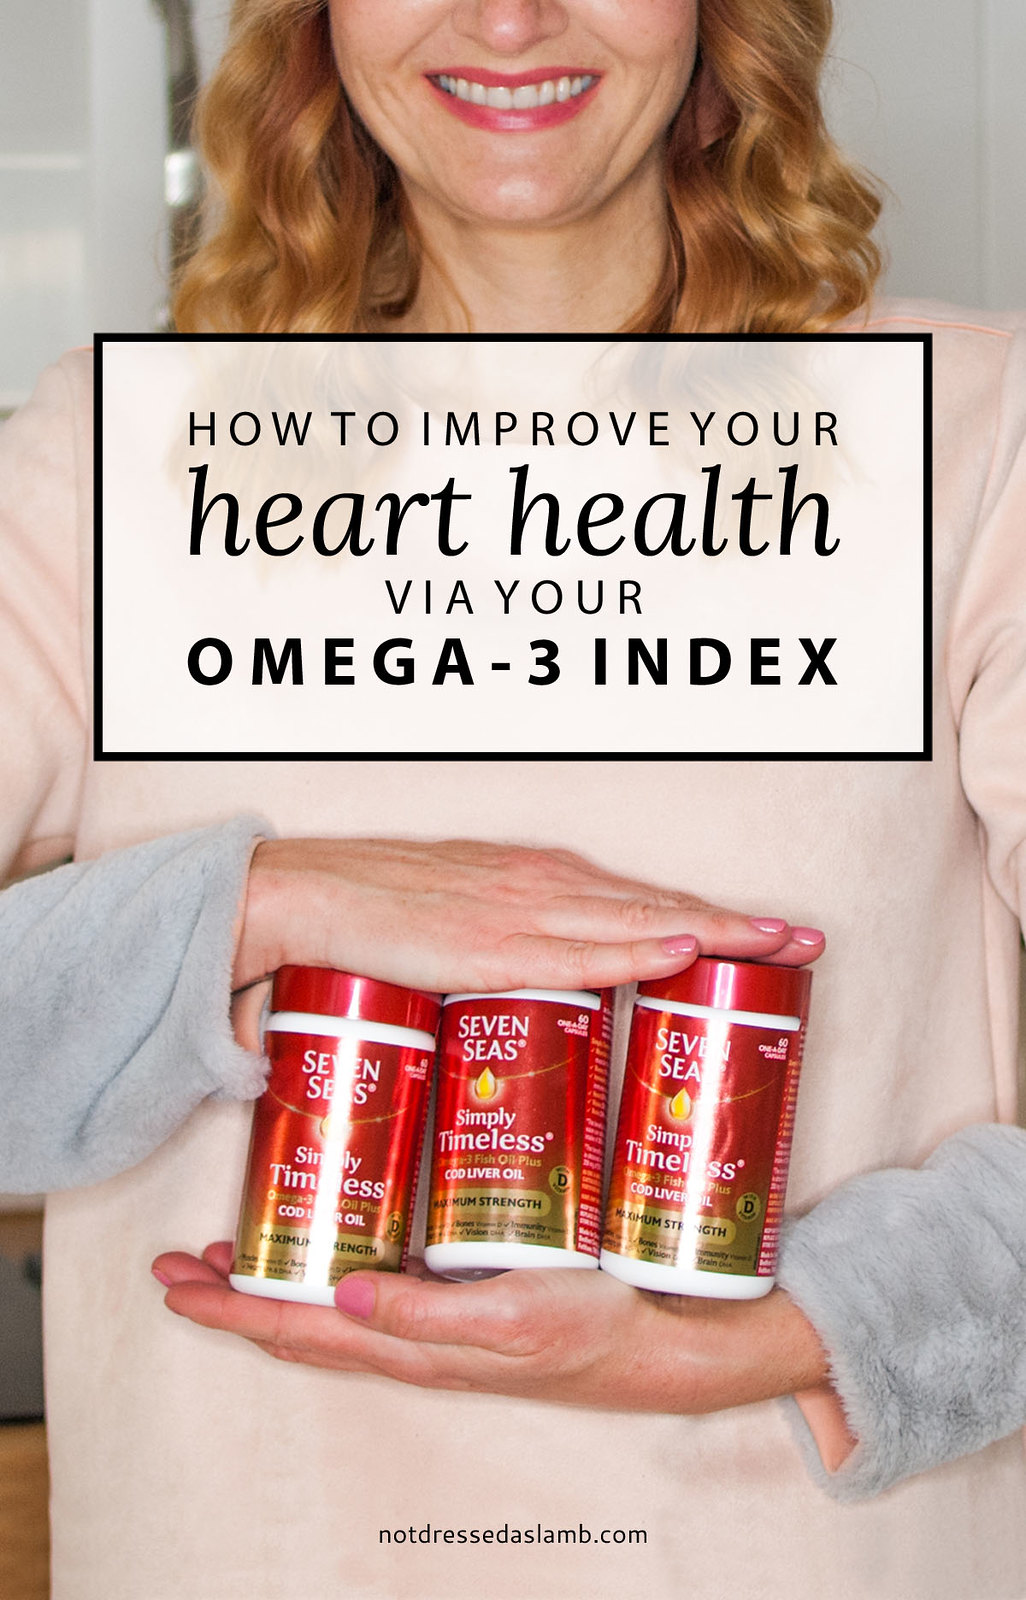 How to Improve Your Heart Health Via Your Omega-3 Index - ways to improve your diet, how to get more omega-3, oily fish | Not Dressed As Lamb